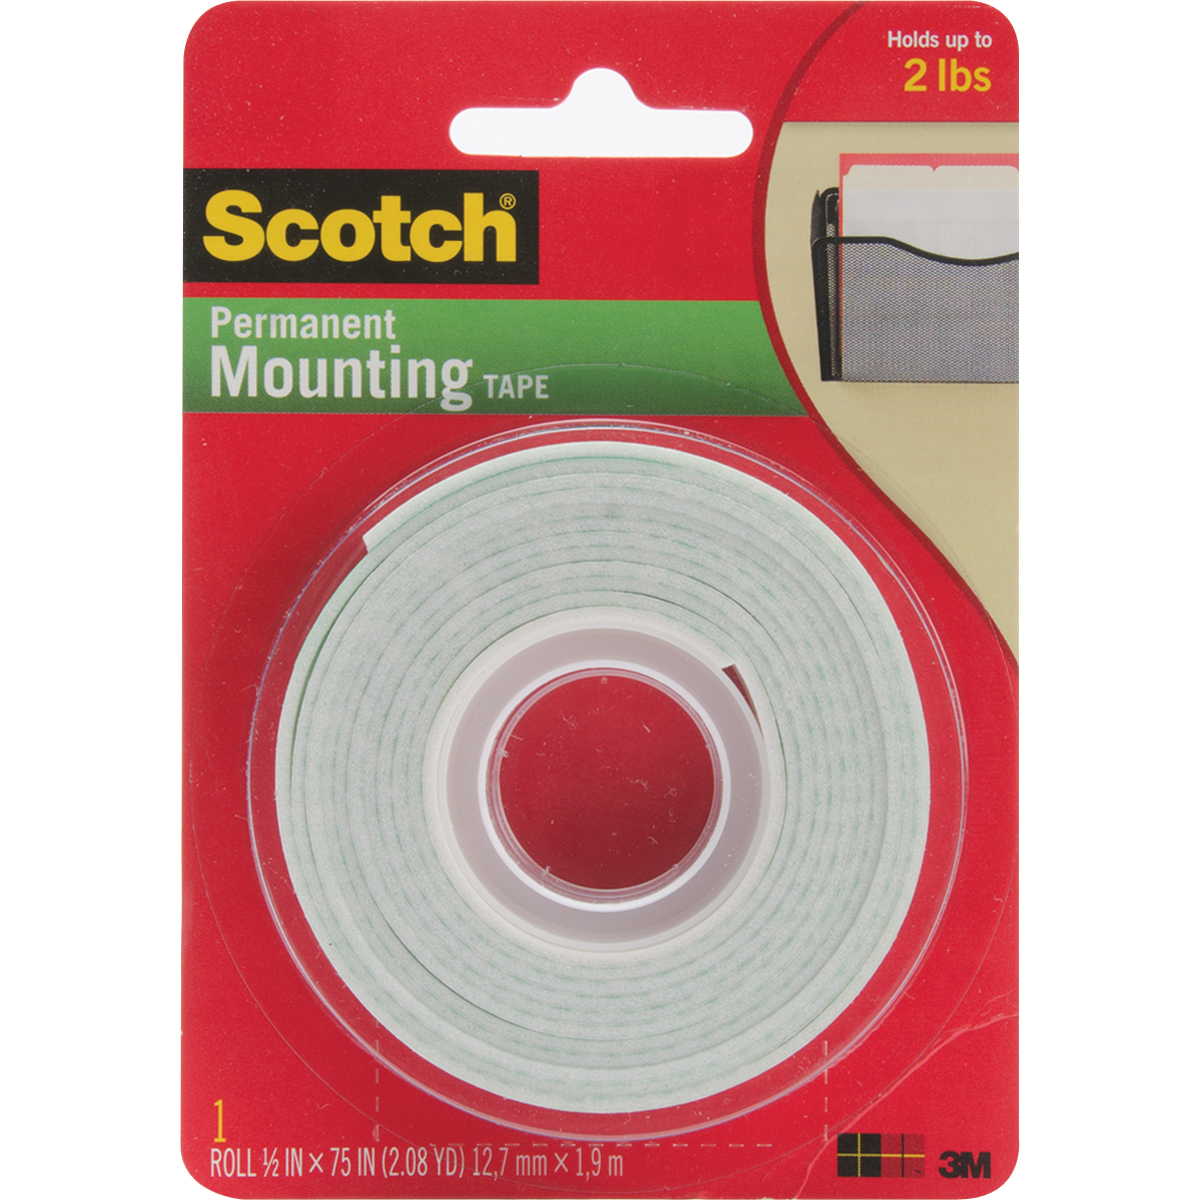 Scotch Foam Mounting Tape-.5X75